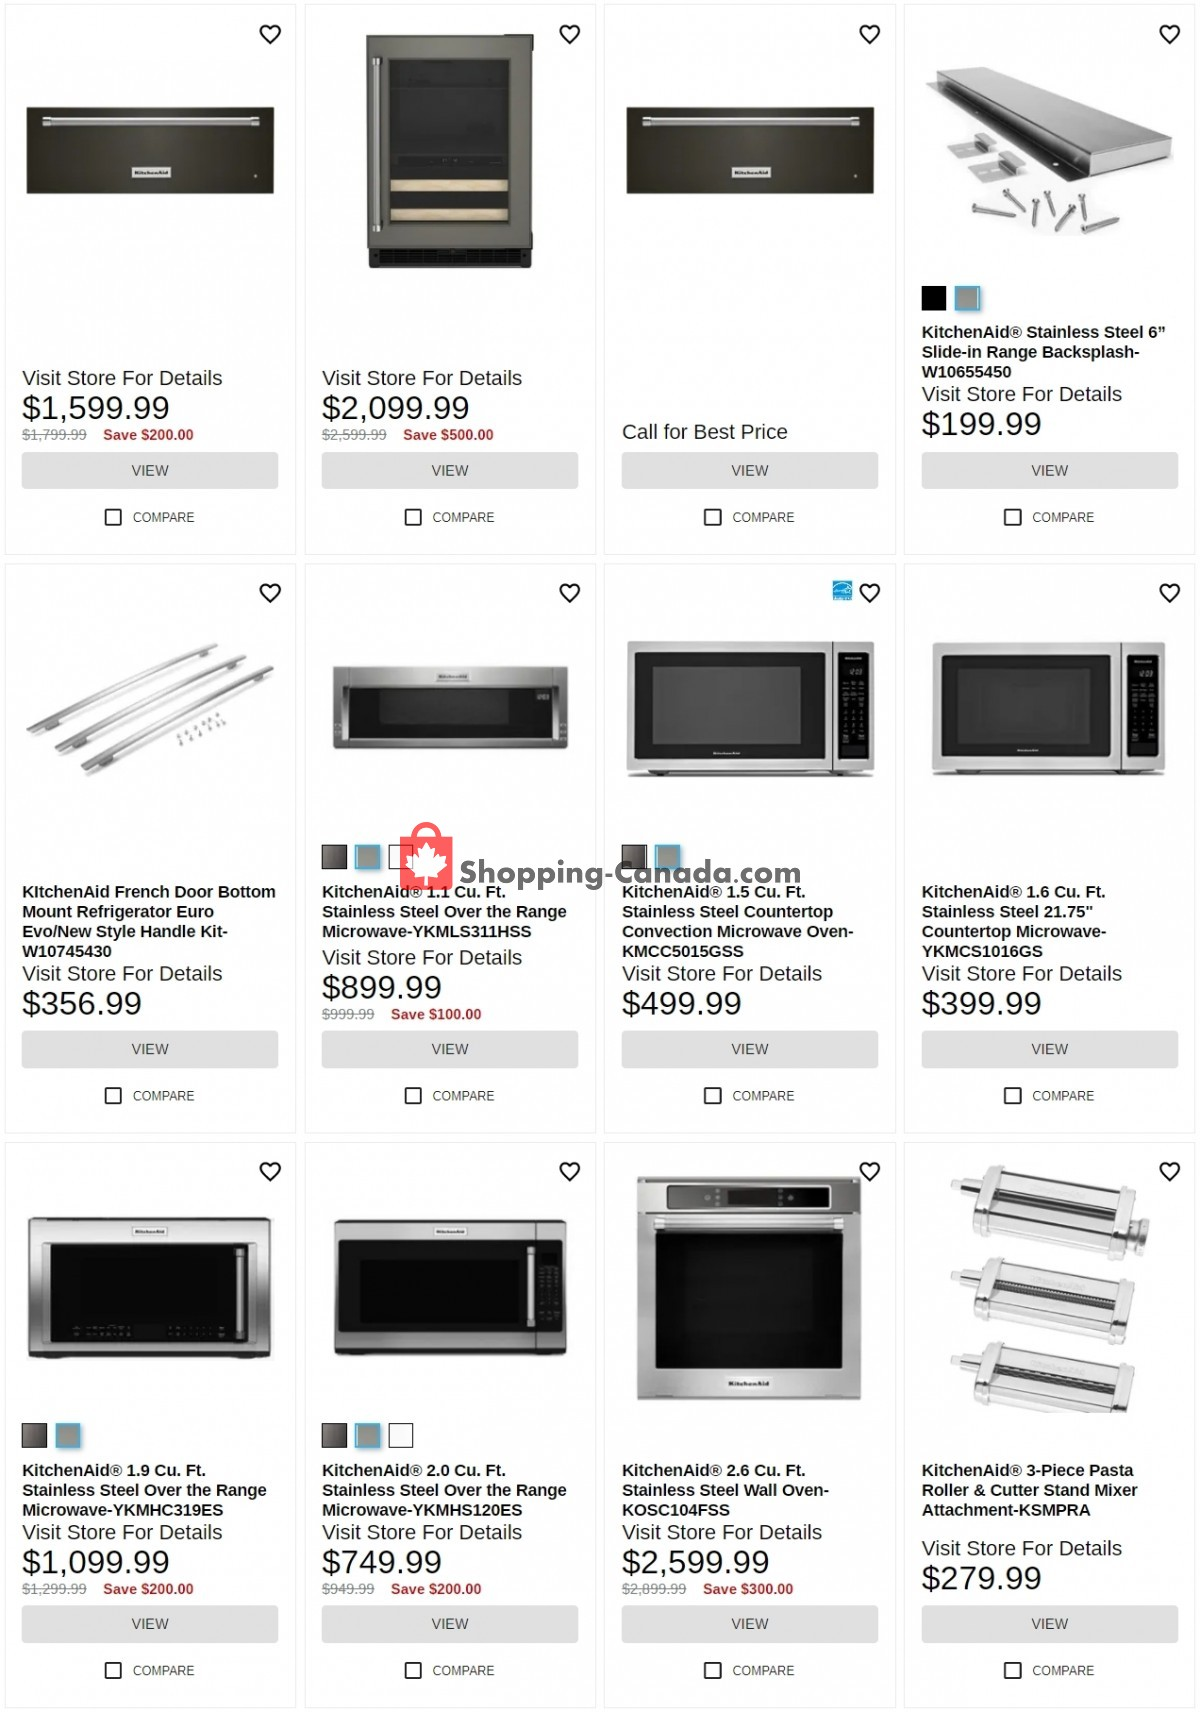 Flyer Bonanza Furniture Canada - from Thursday May 27, 2021 to Wednesday June 23, 2021